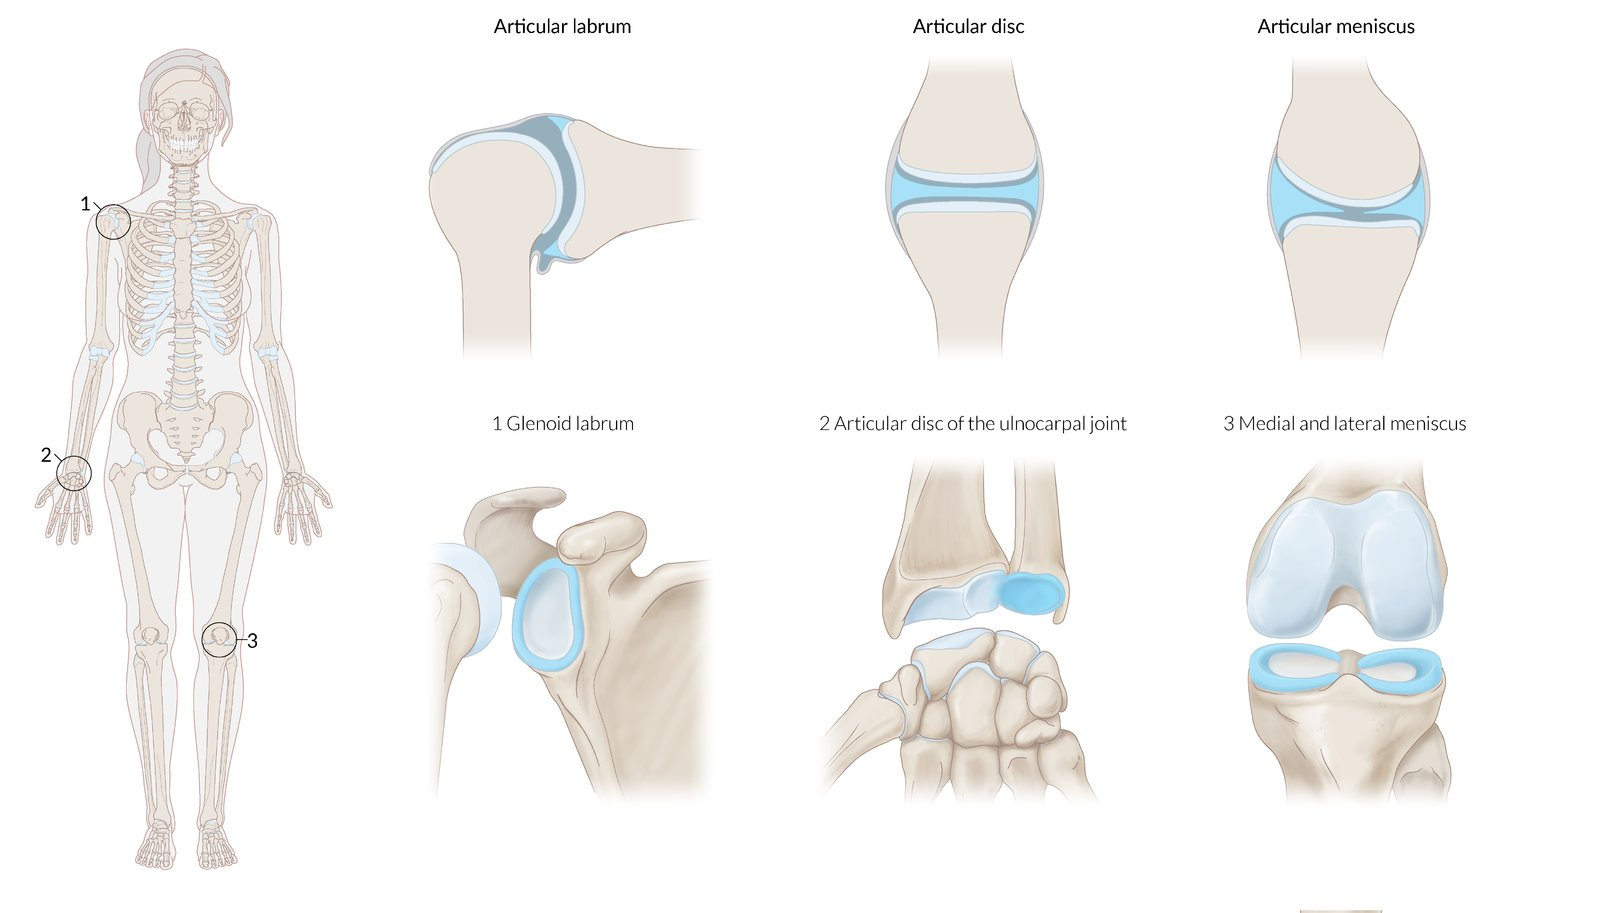 Joints Amboss Synchondrosis and symphysis are two types of joints that are situated between bones. joints amboss